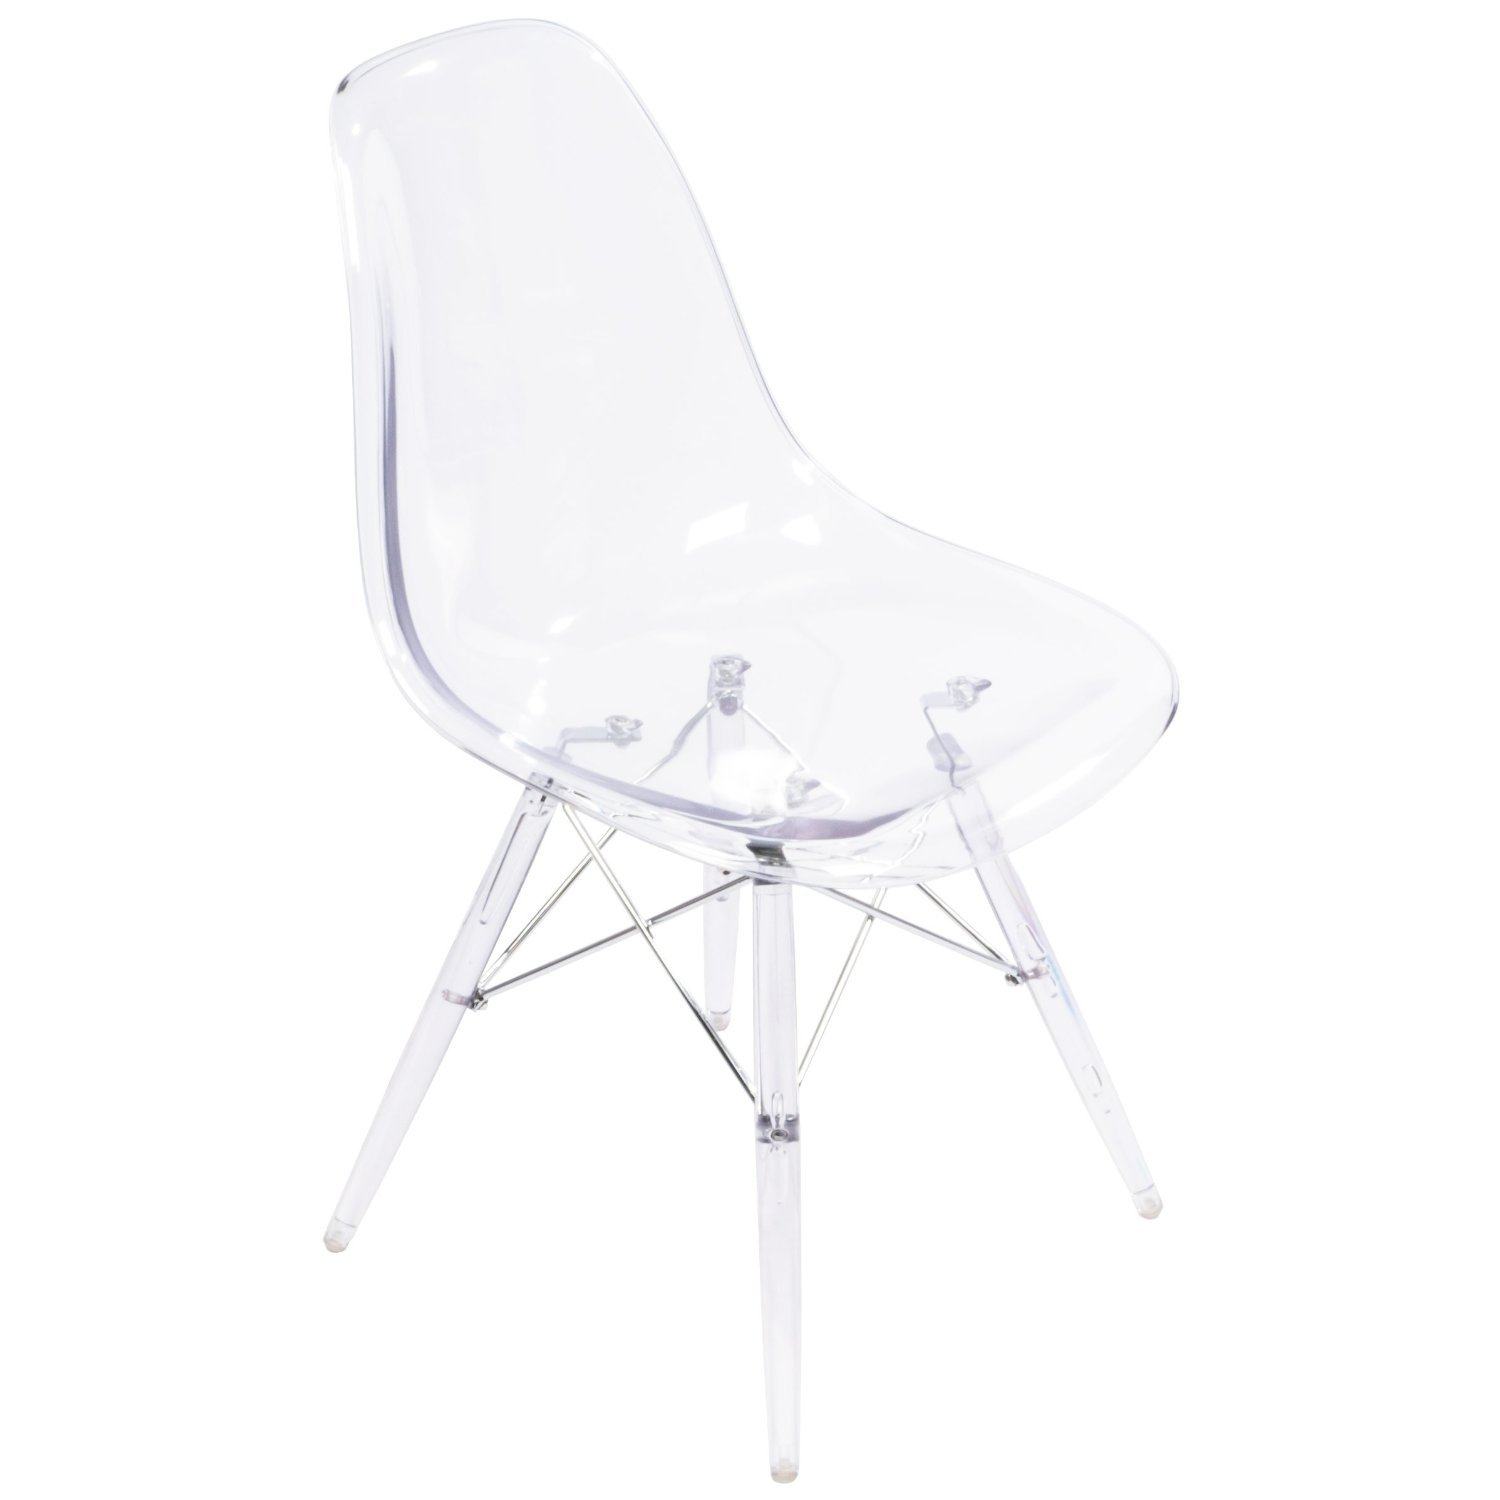 Nicer Furniture® Set of 1 Transparent Clear - Eames Style Side Chair with Transparent Clear Legs Eiffel Dining Room Chair - Lounge Chair without Arms Chairs Seats Metal Dowel Leg - Eiffel Legged Base Molded Transparent Clear Seat Shell Top-Paris Tower Side